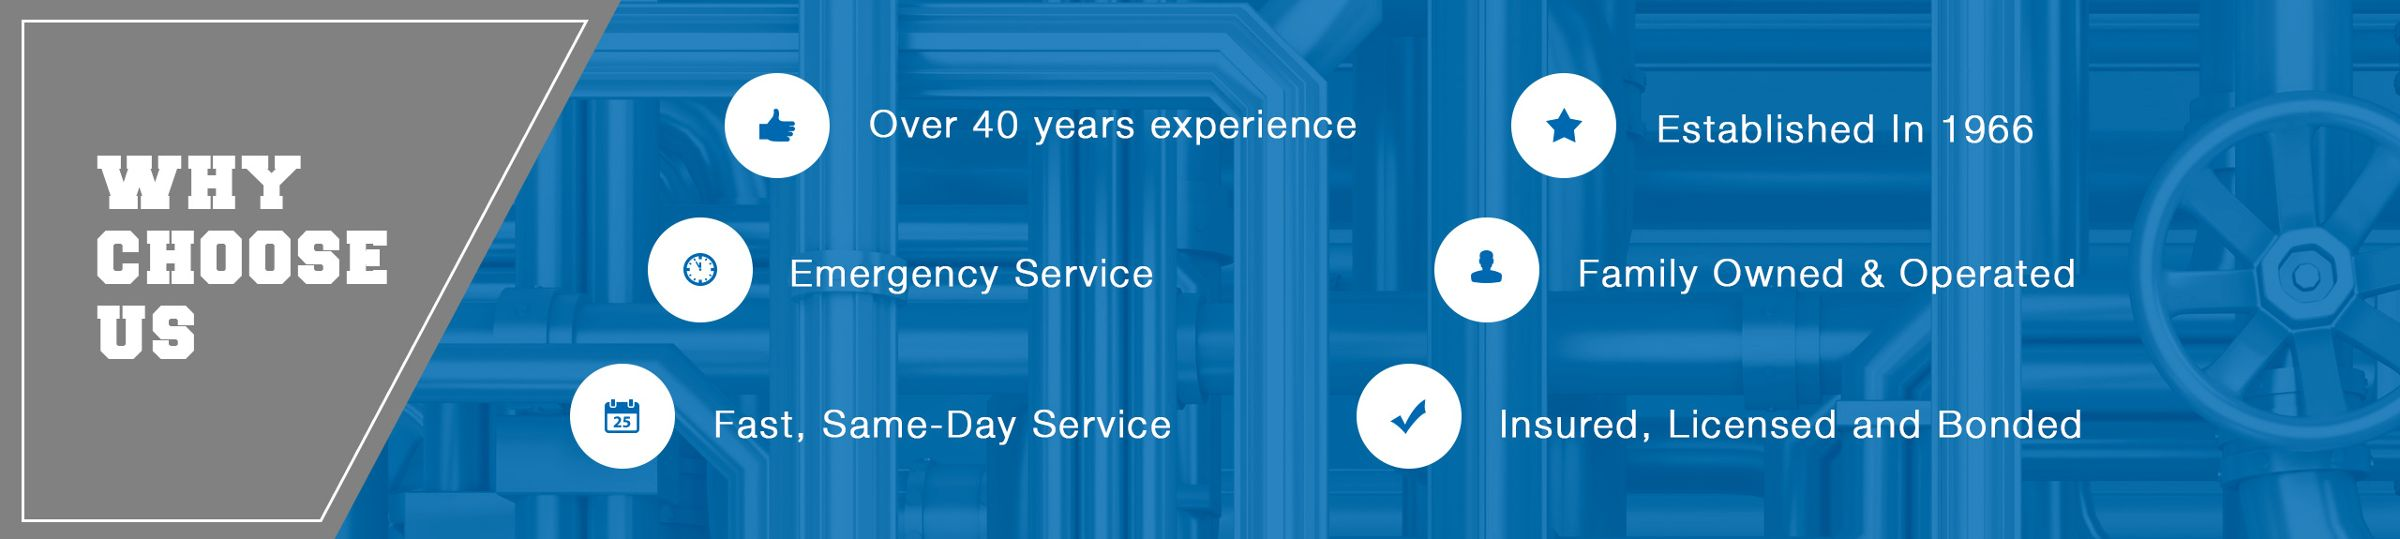 Why Choose Us - Established in 1966, Emergency Service, Fast, Same-Day Service, Insured, Licensed and Bonded.